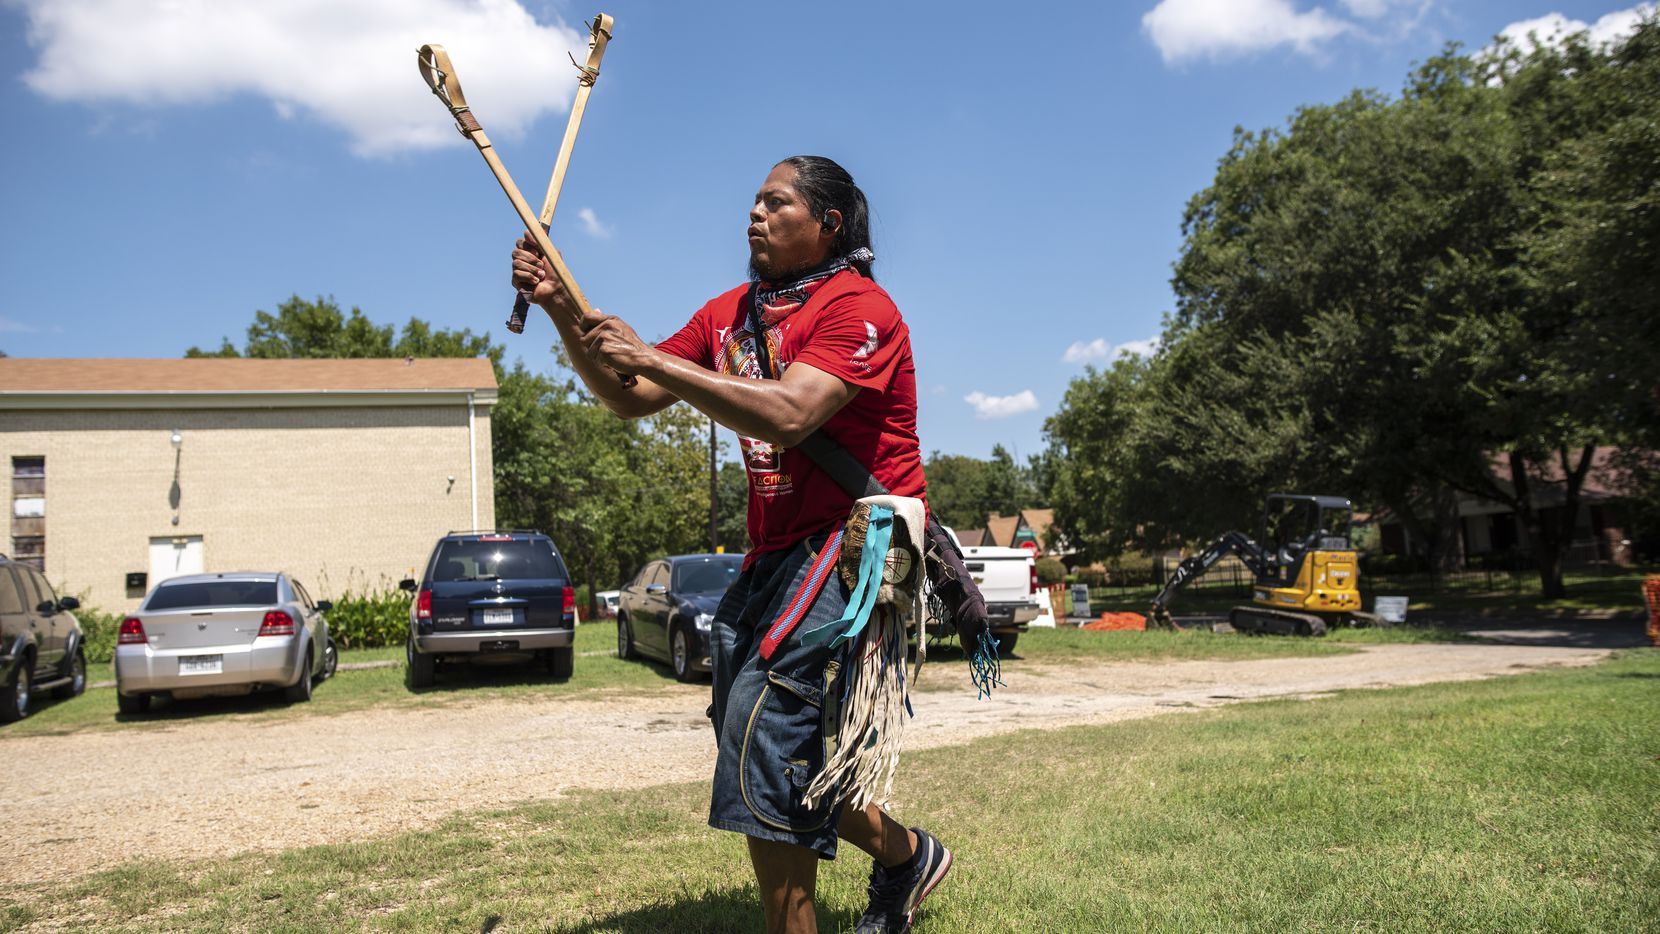 """Eli Hickman, 40, of Choctaw/Navajo people, plays a Native American stick ball game translated to """"Little Brother of War"""" during a community awareness event hosted by American Indian Heritage Day in Texas, Sept. 05, 2020 at the Dallas Indian Mission United Methodist Church. The event provided information about COVID-19, the 2020 Census and registered people to vote. Volunteers also handed out face coverings, free school supplies and """"Indian tacos."""""""